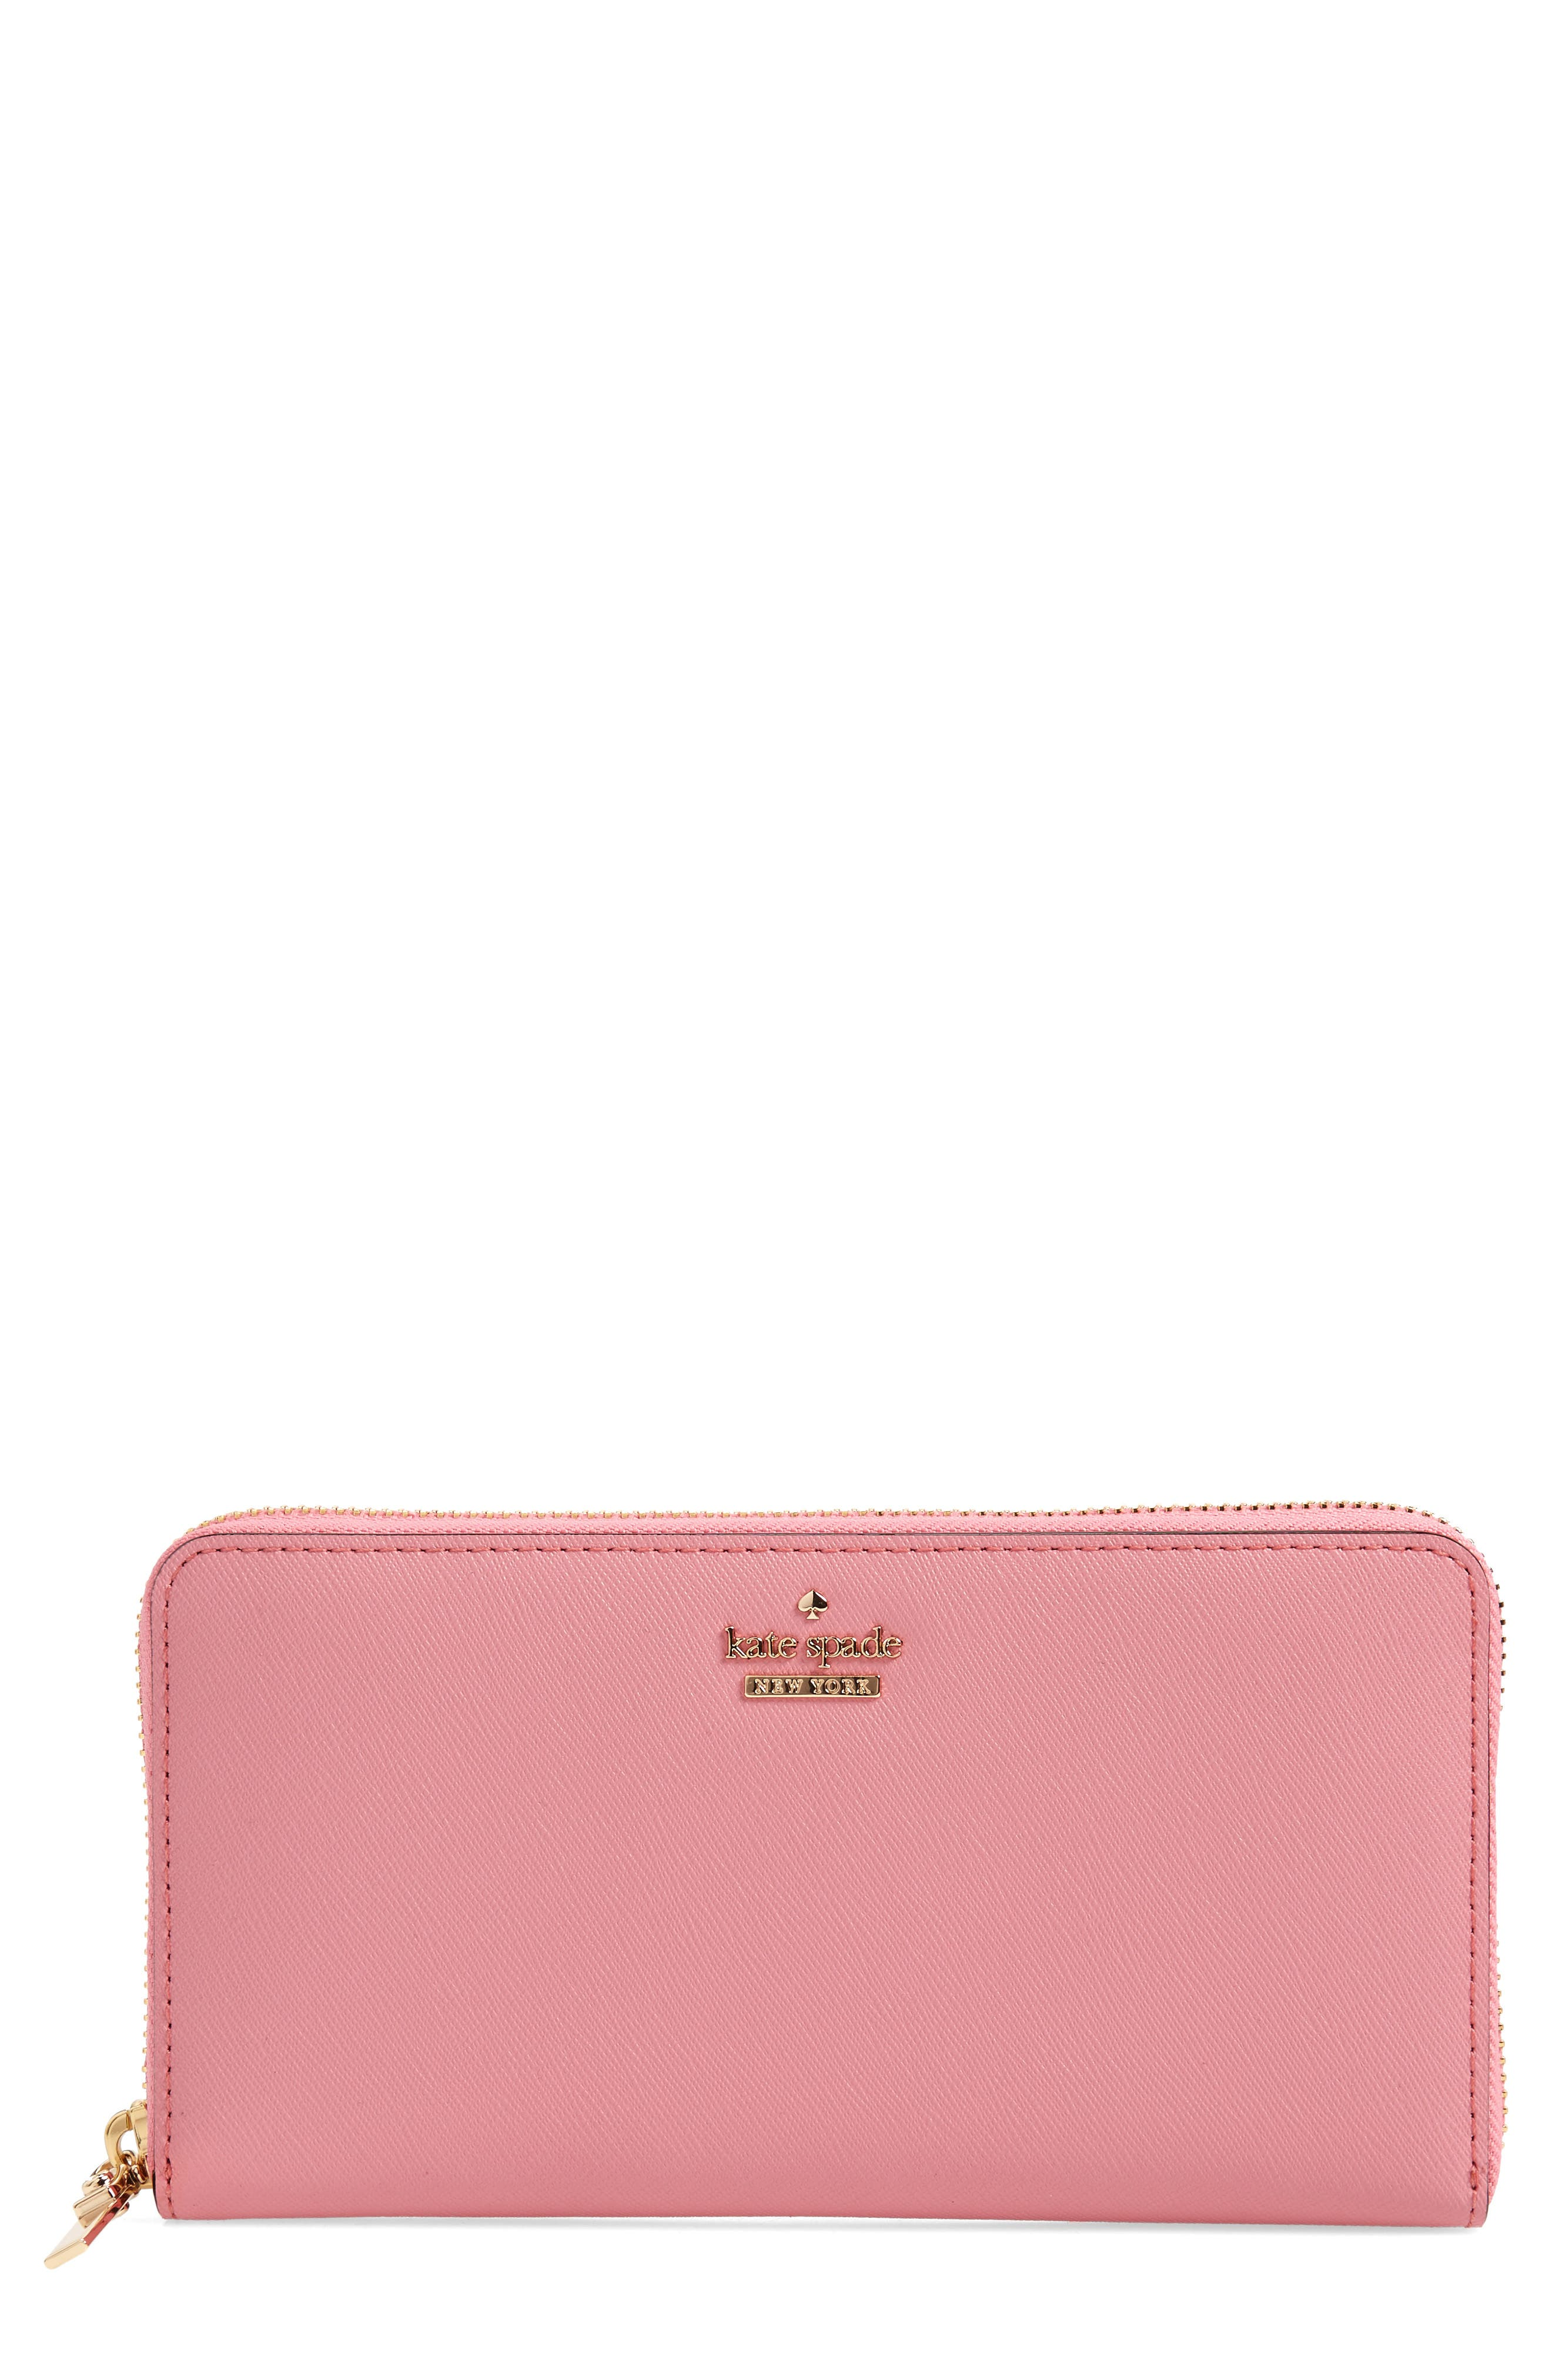 'cameron street - lacey' leather wallet,                         Main,                         color, Pink Majolica